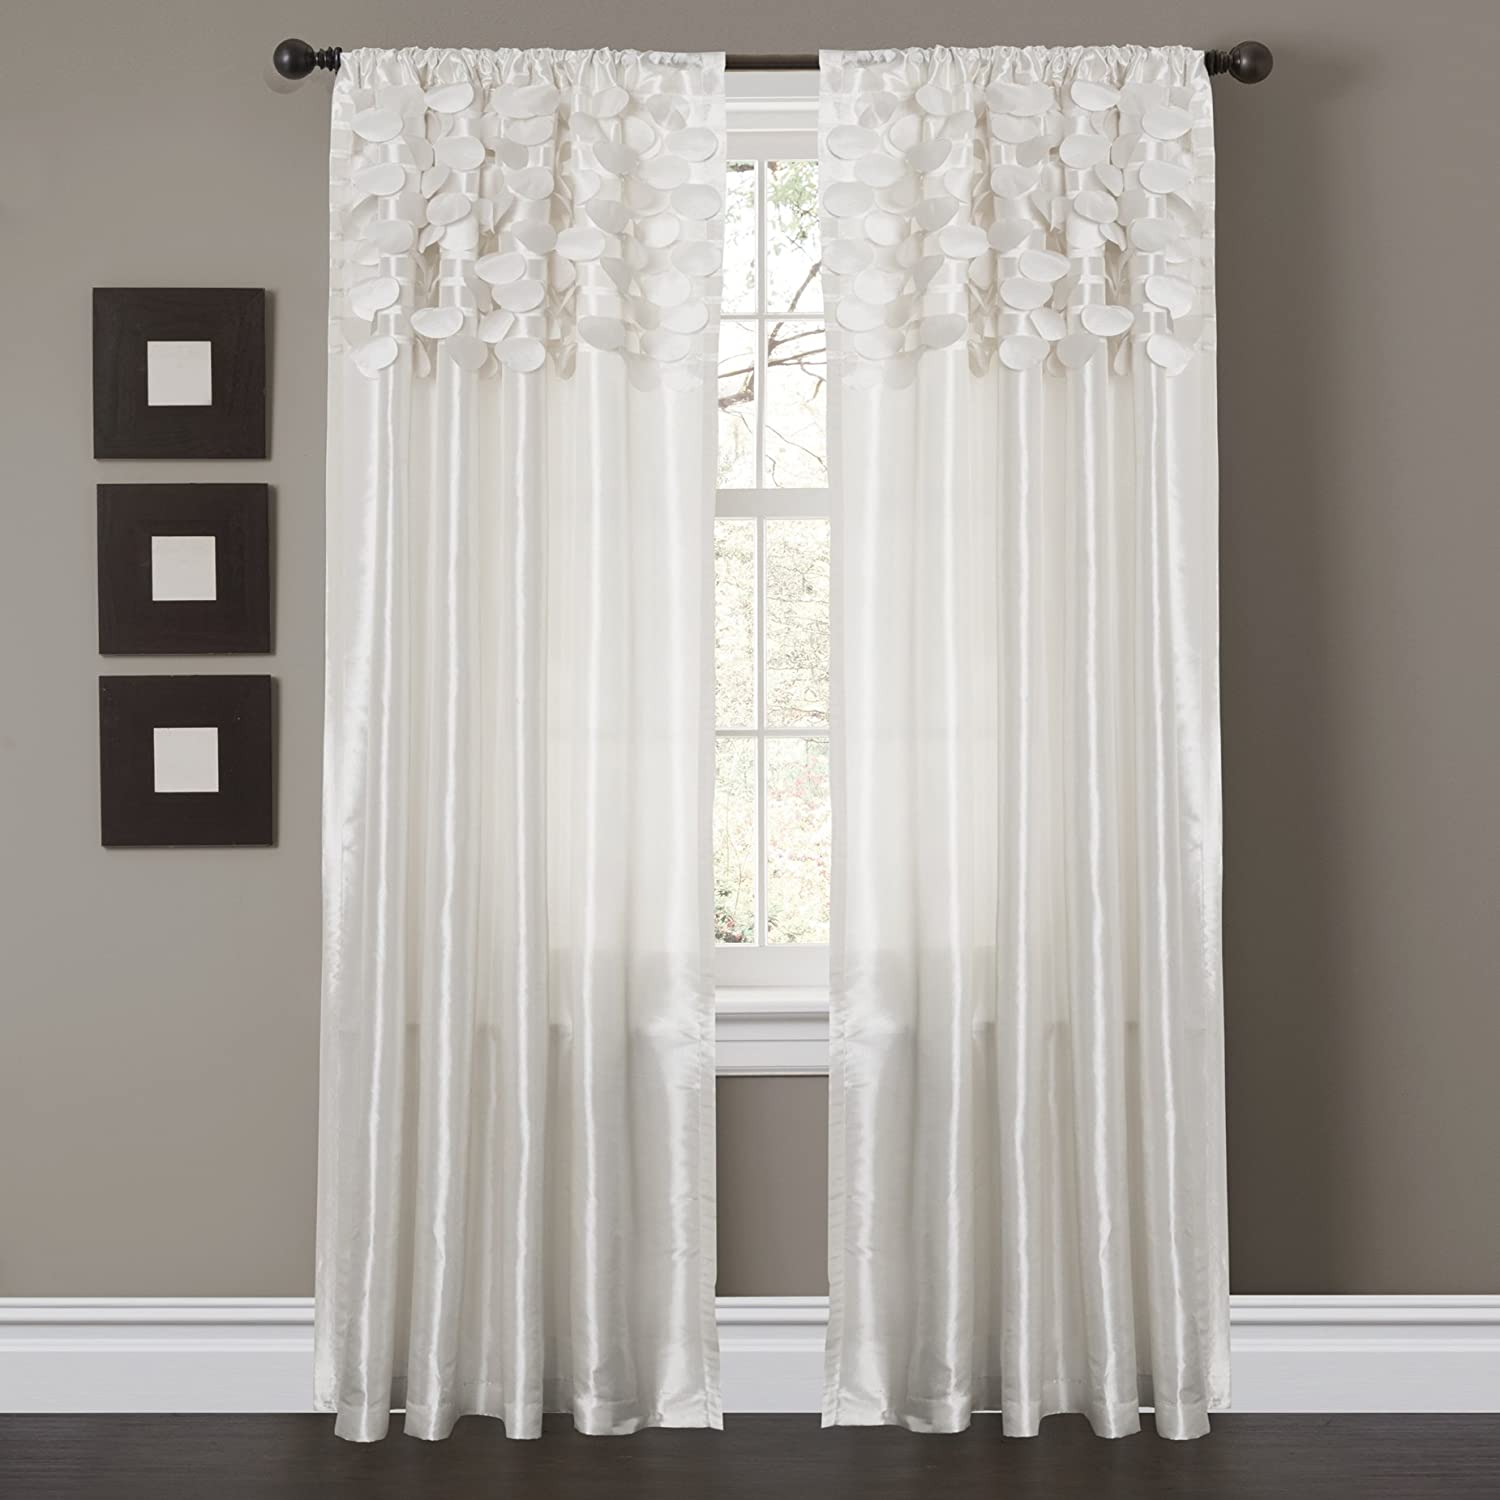 Amazon Lush Decor Circle Dream Window Curtain Panels White Set Of 2 Home Kitchen